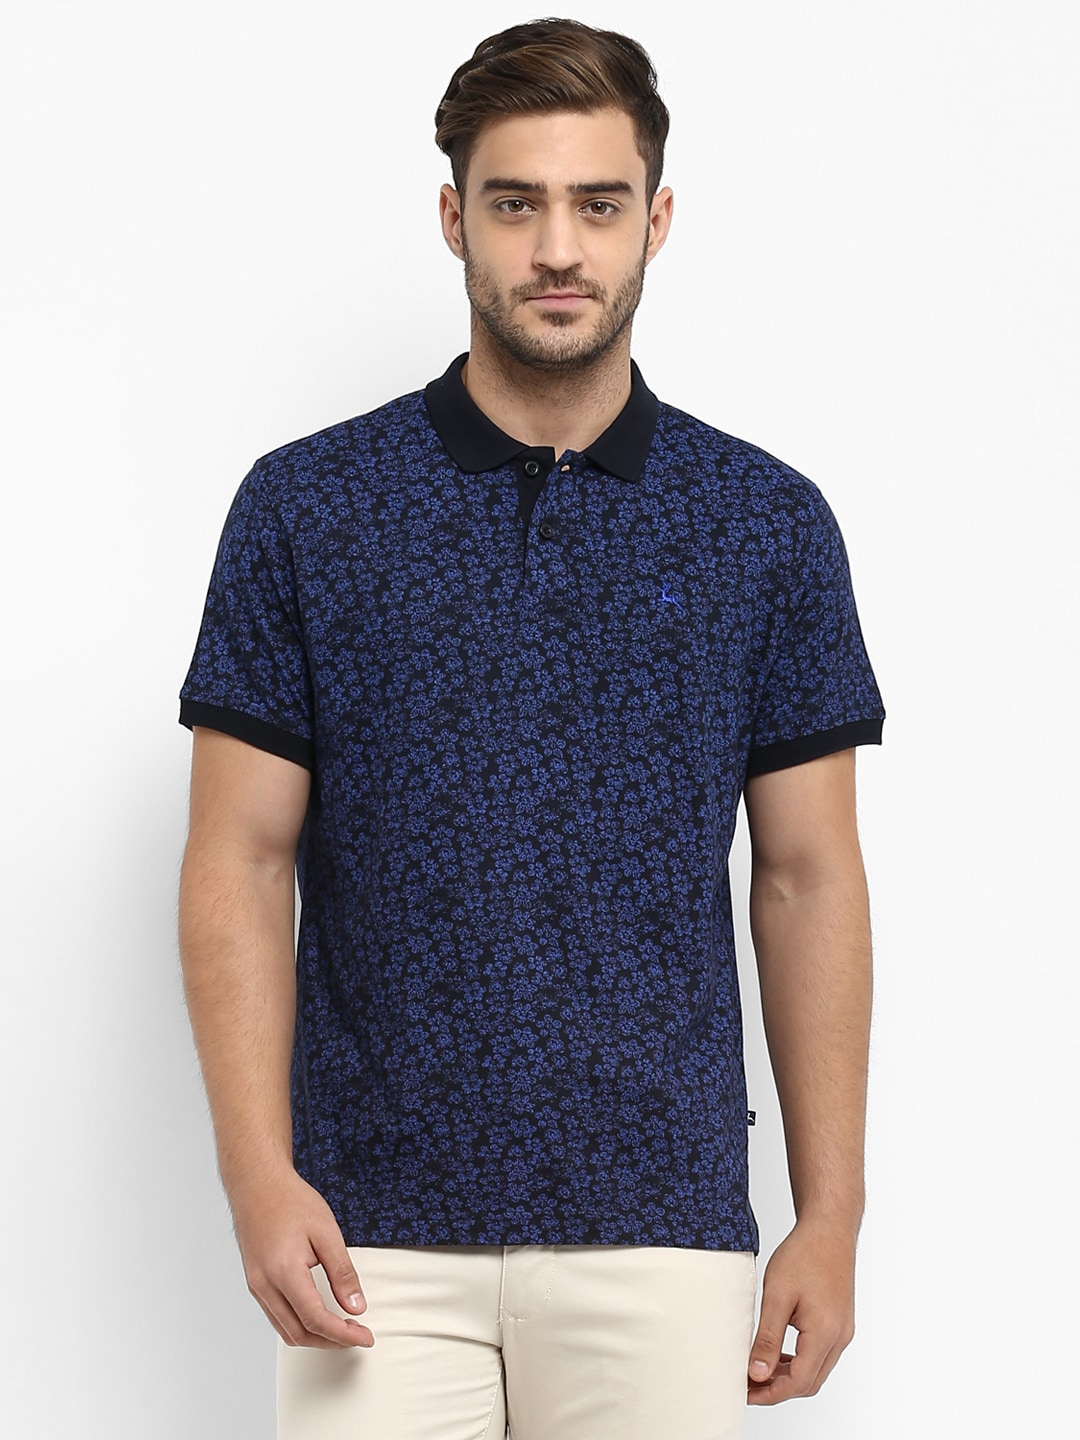 b38eceb8e5 Parx - Exclusive Parx Online Store in India at Myntra